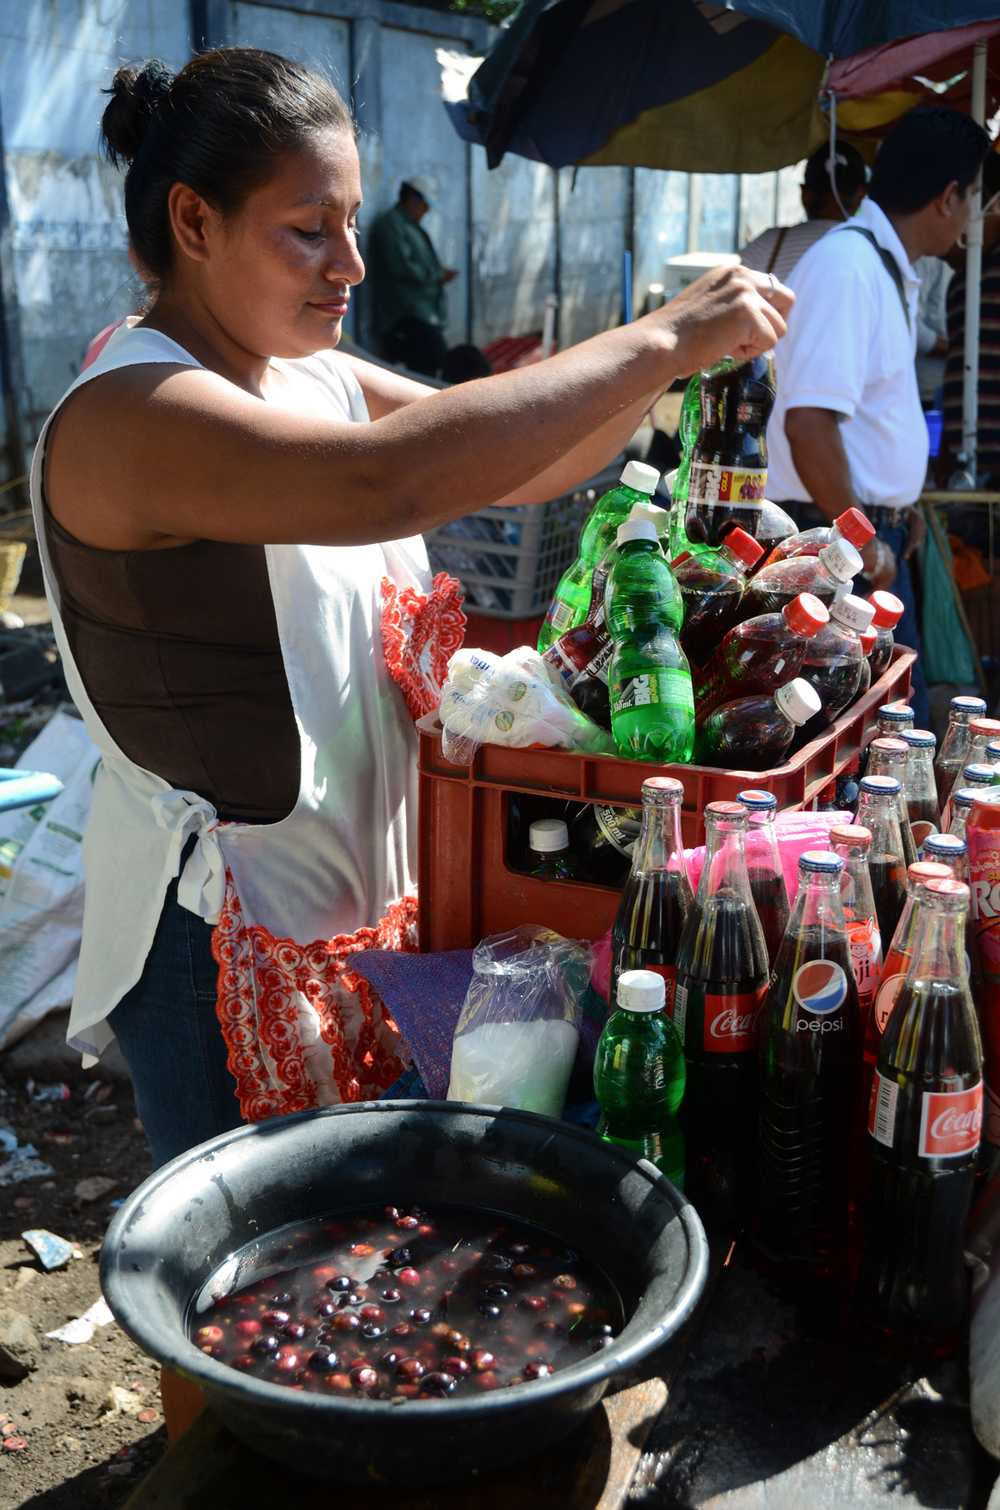 Dayani Baldelomar working at her stand in Managua's Mercado Oriental (2012). Photo by Elizabeth Kay.